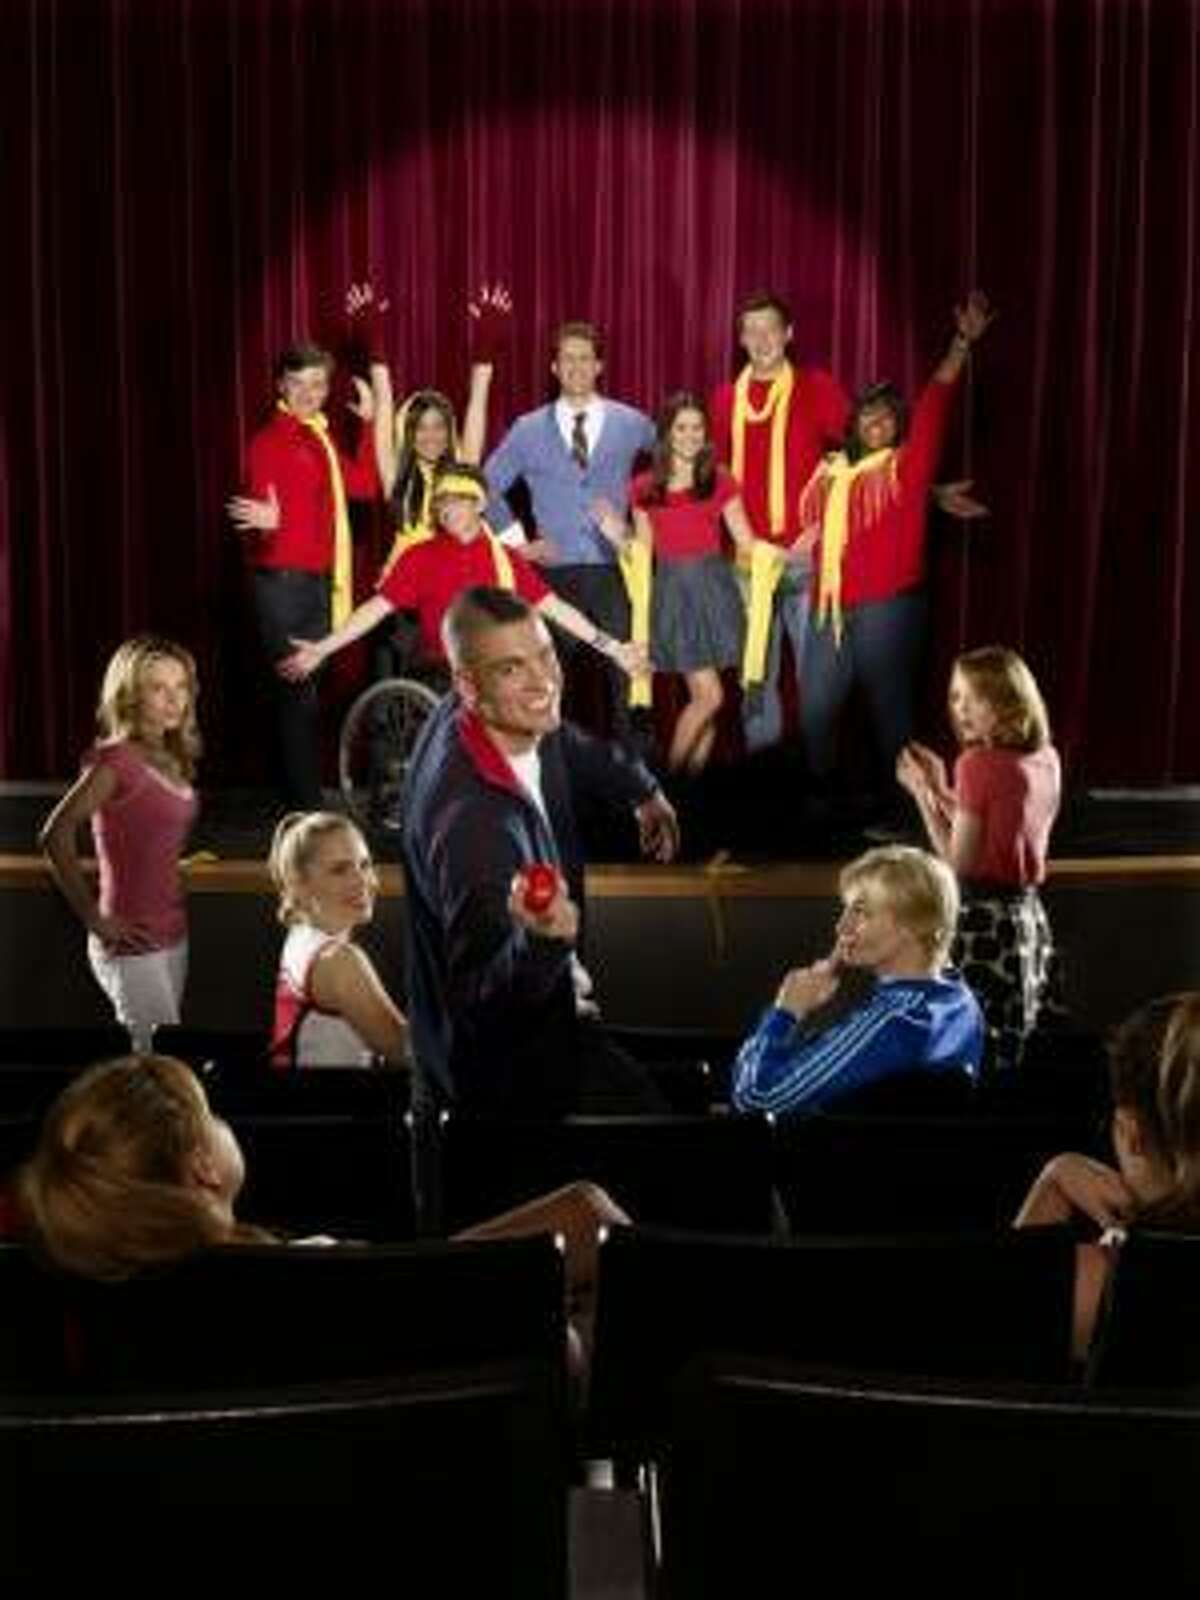 Glee , which premieres on Fox, is a comedy for the underdog in all of us. The cast members stopped by Hot Topics in The Galleria to visit fans. Read what our blogger thought here.